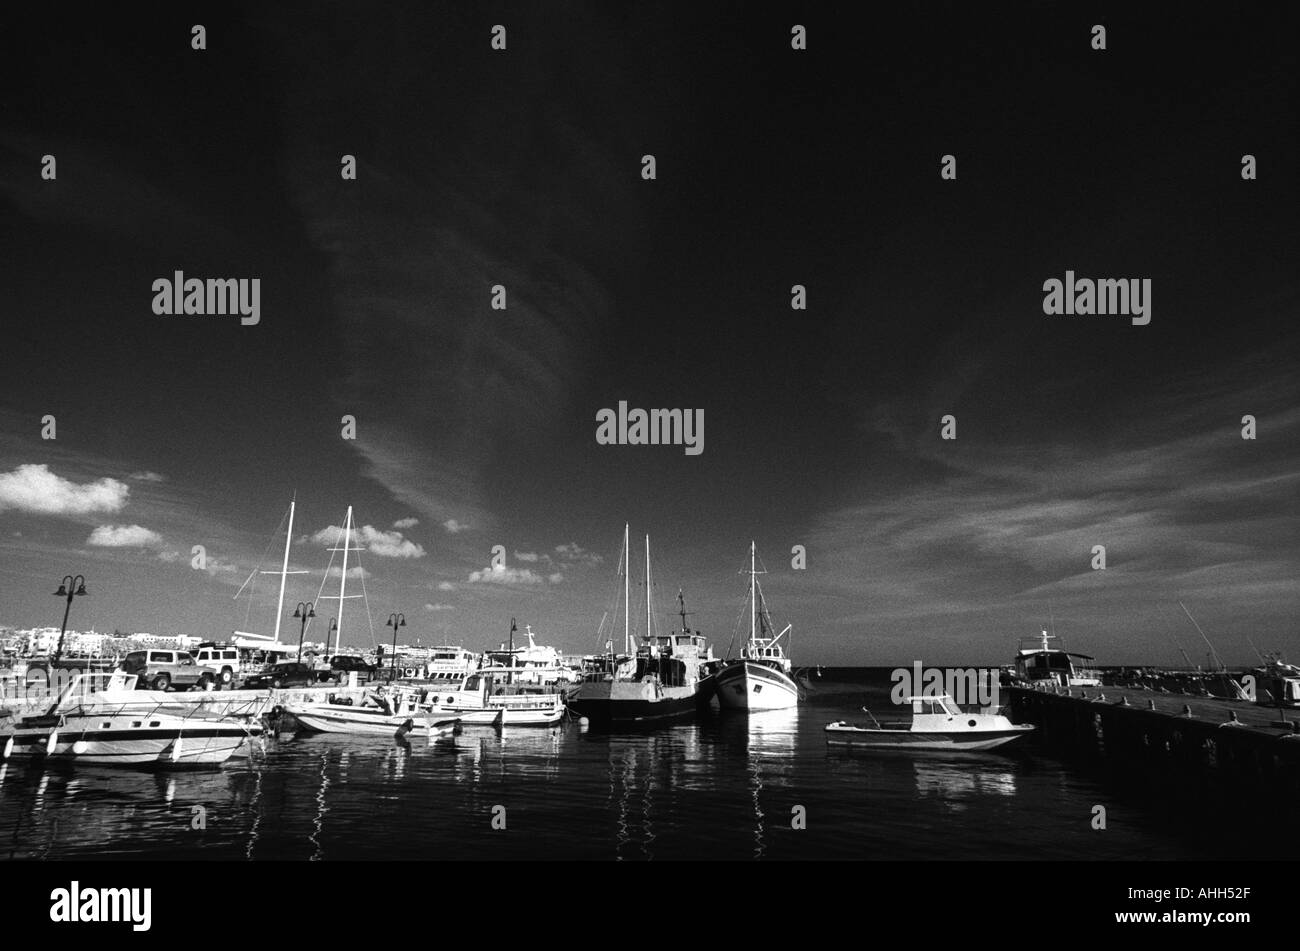 Paphos Harbor, with ships and boats in calm, safe anchorage - Stock Image